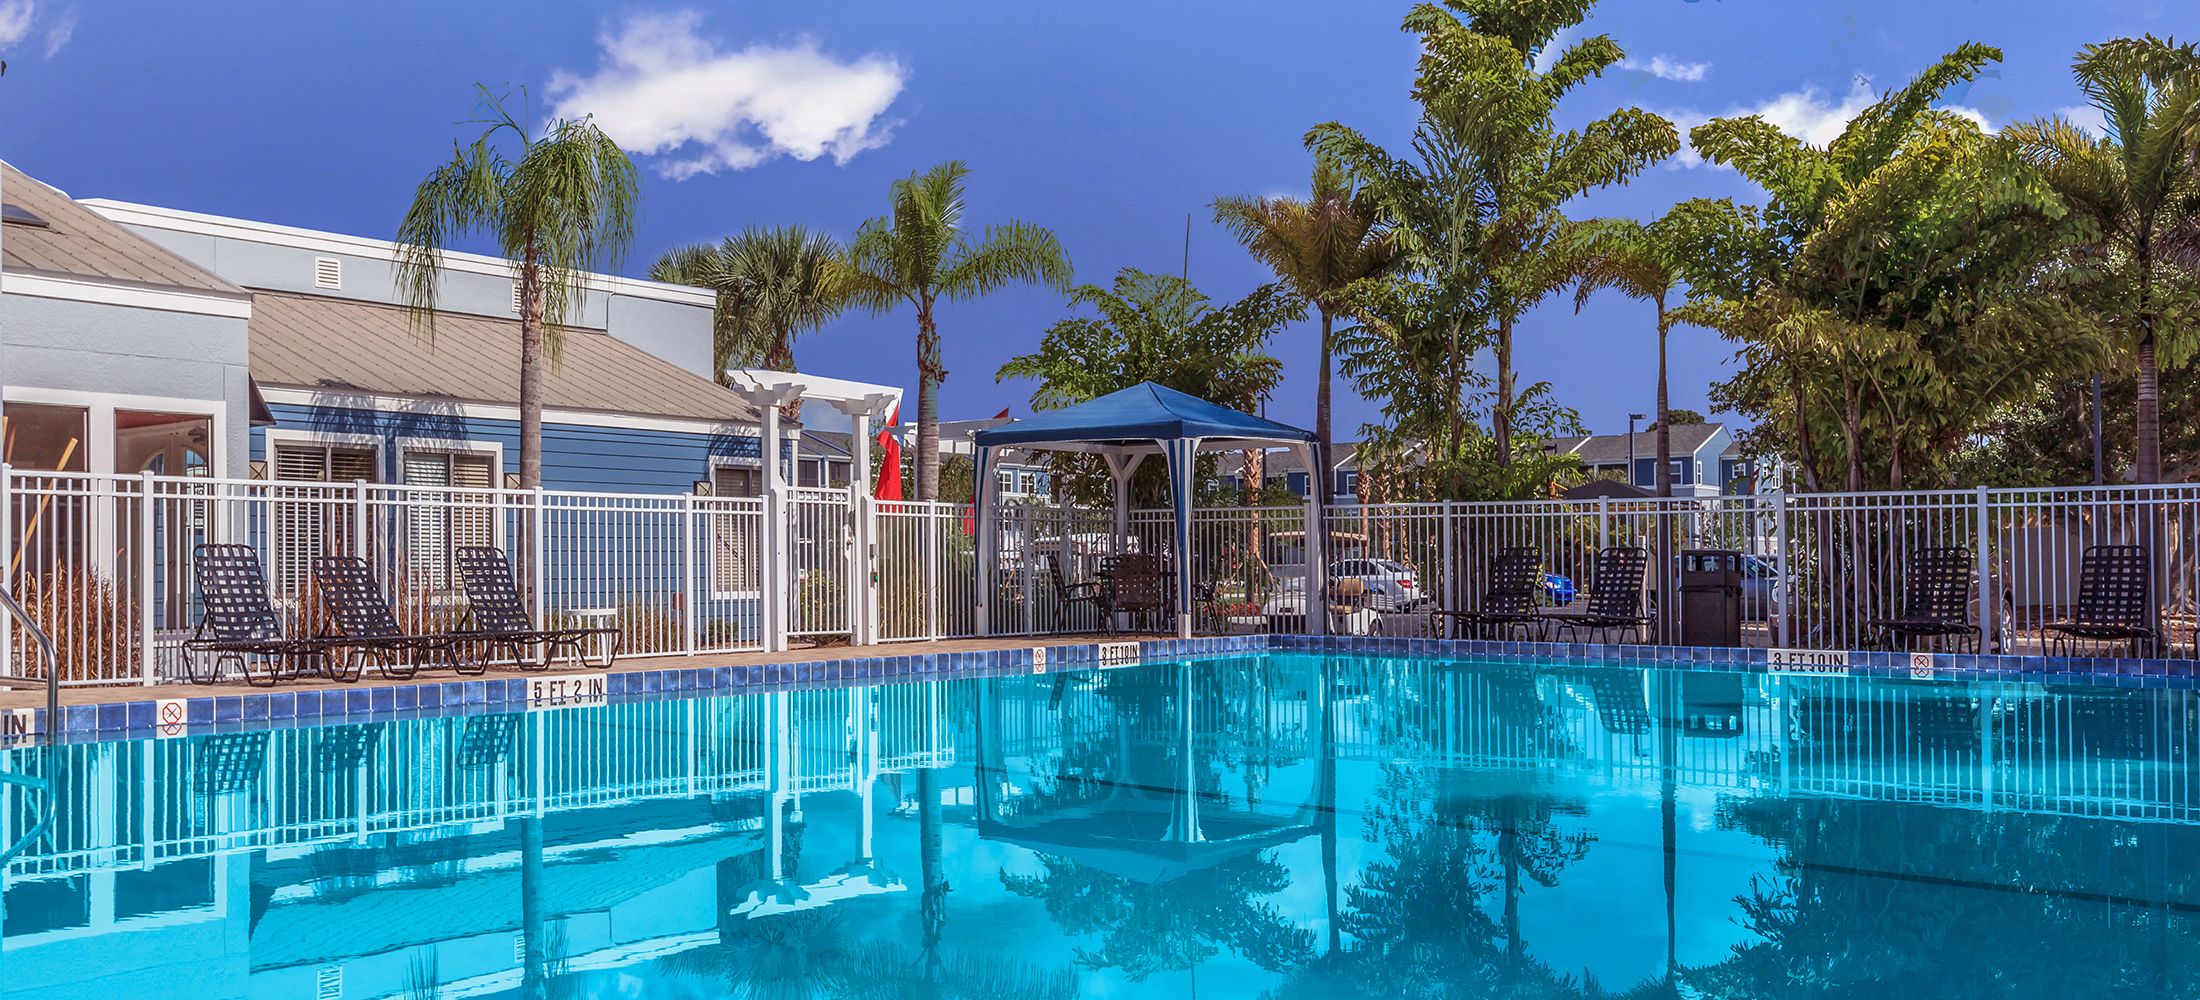 Apartments In Bradenton Fl